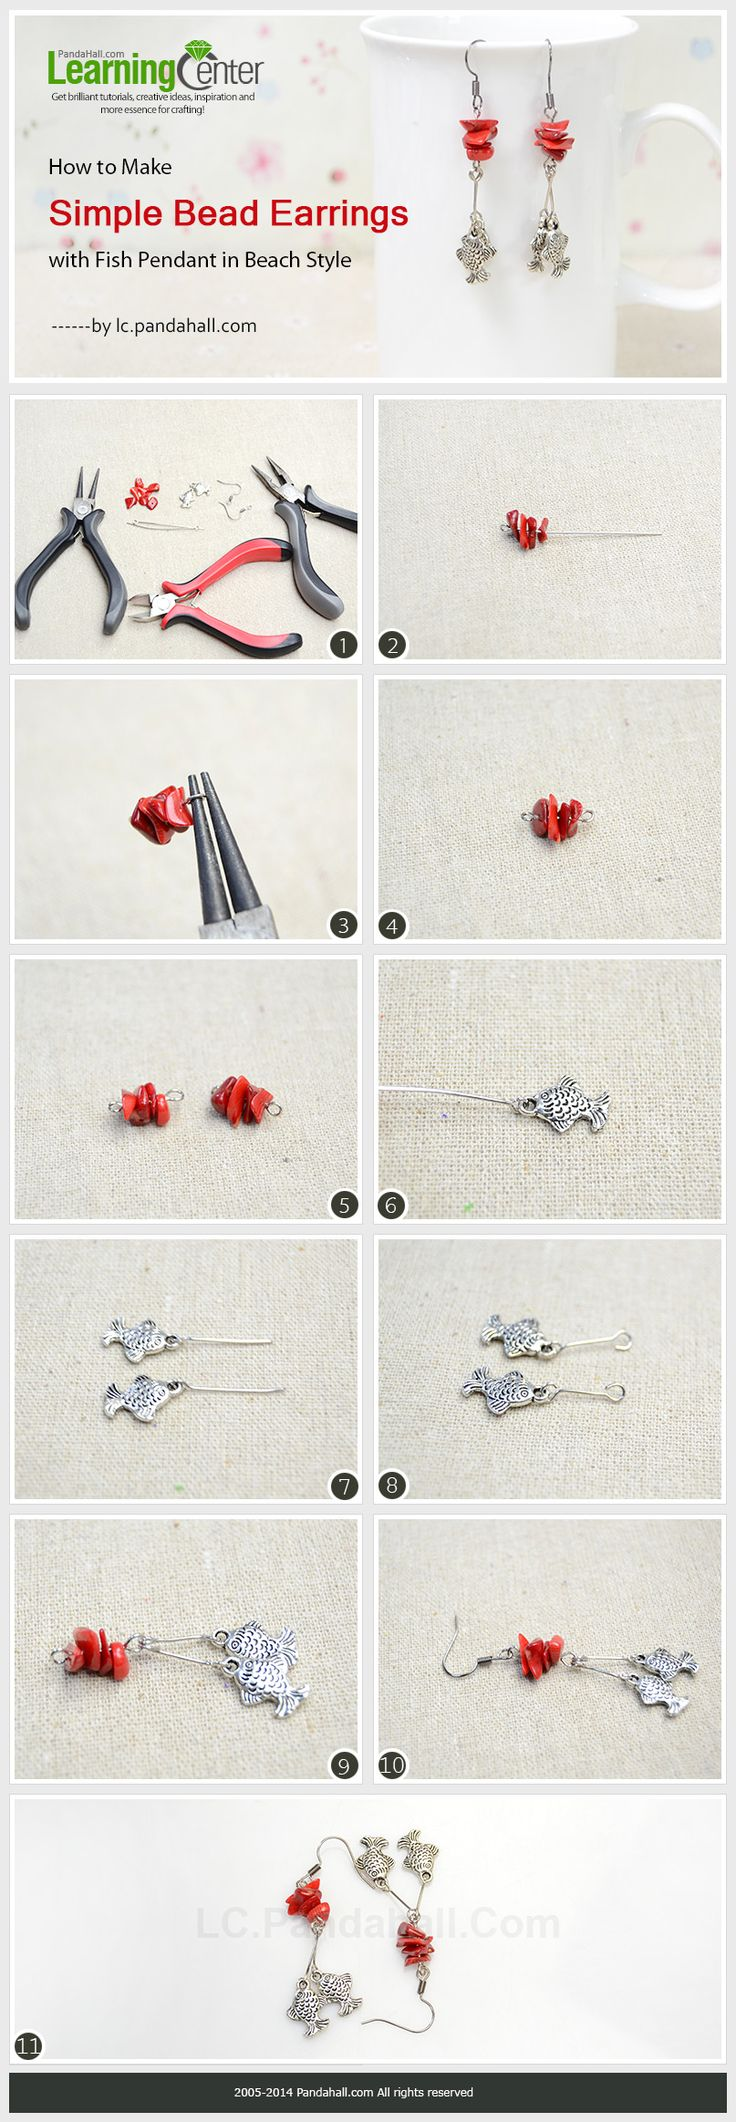 How to Make Simple Bead Earrings with Fish Pendant in Beach Style